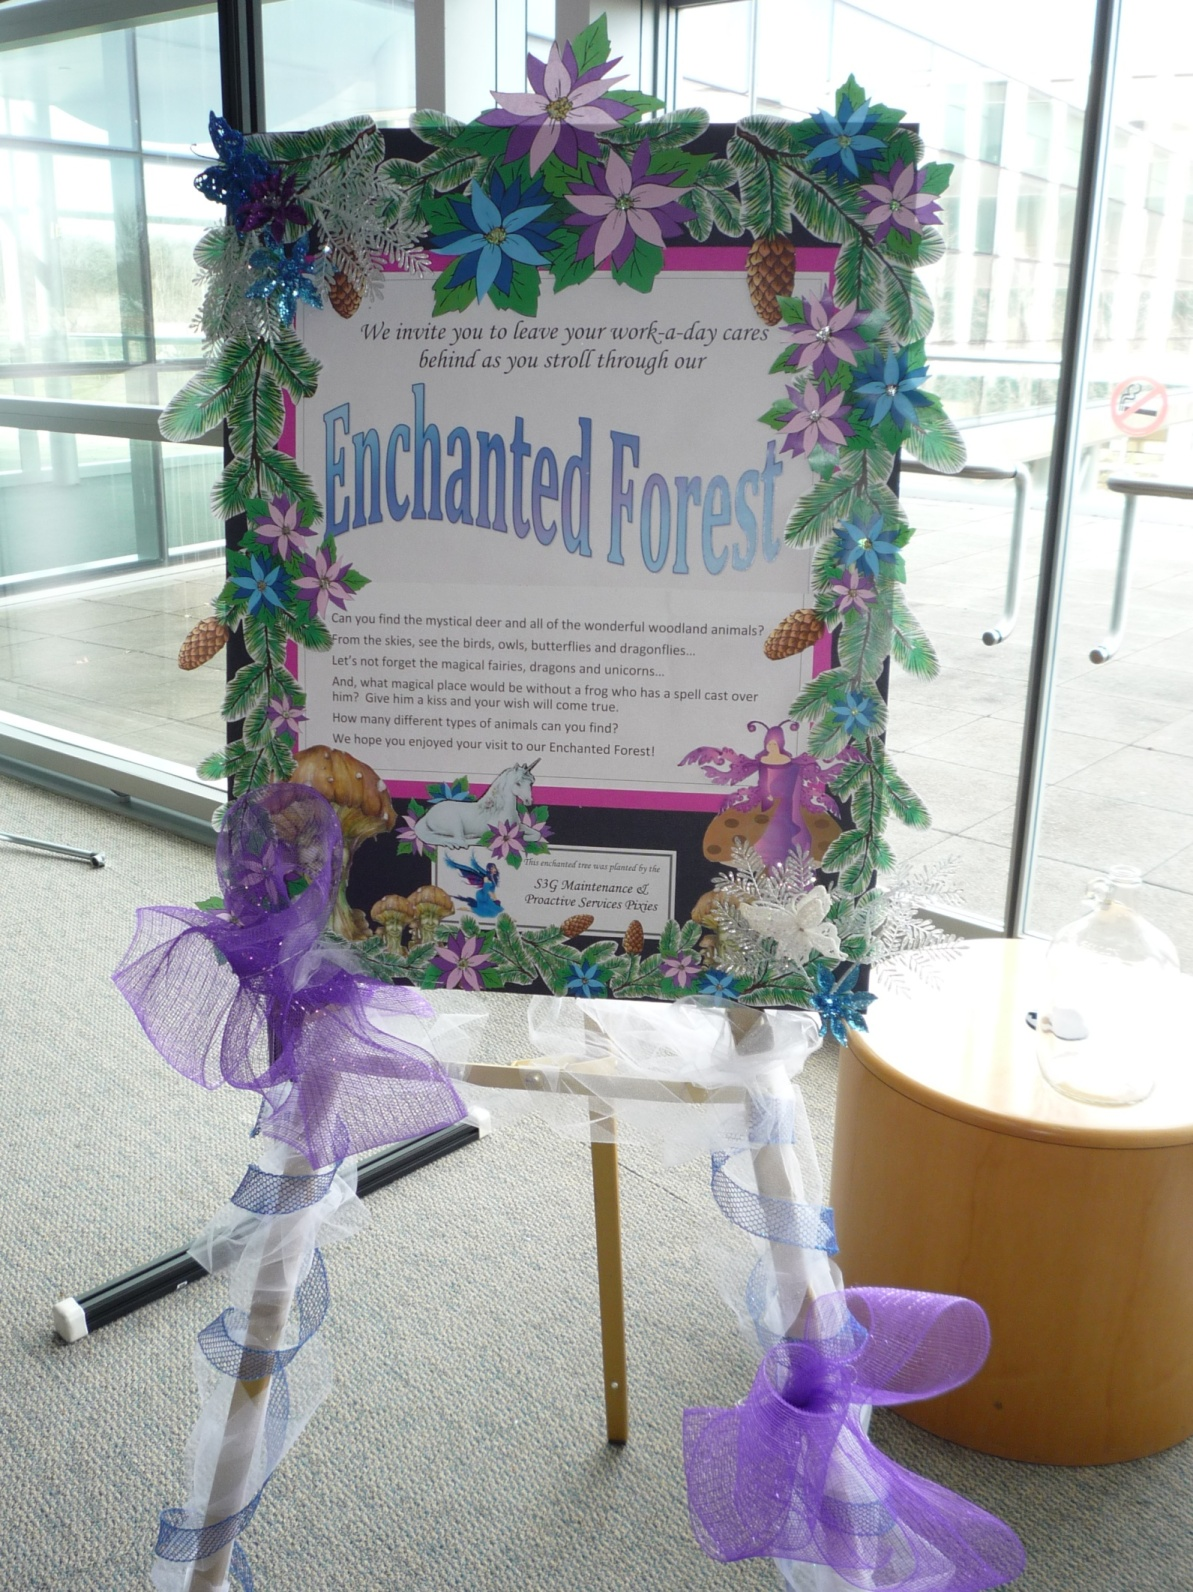 This Year Our Theme Was Enchanted Forest I Put My Papercraft Skills To Work On The Poster And Tree Full Of Both Woodland Magical Animals